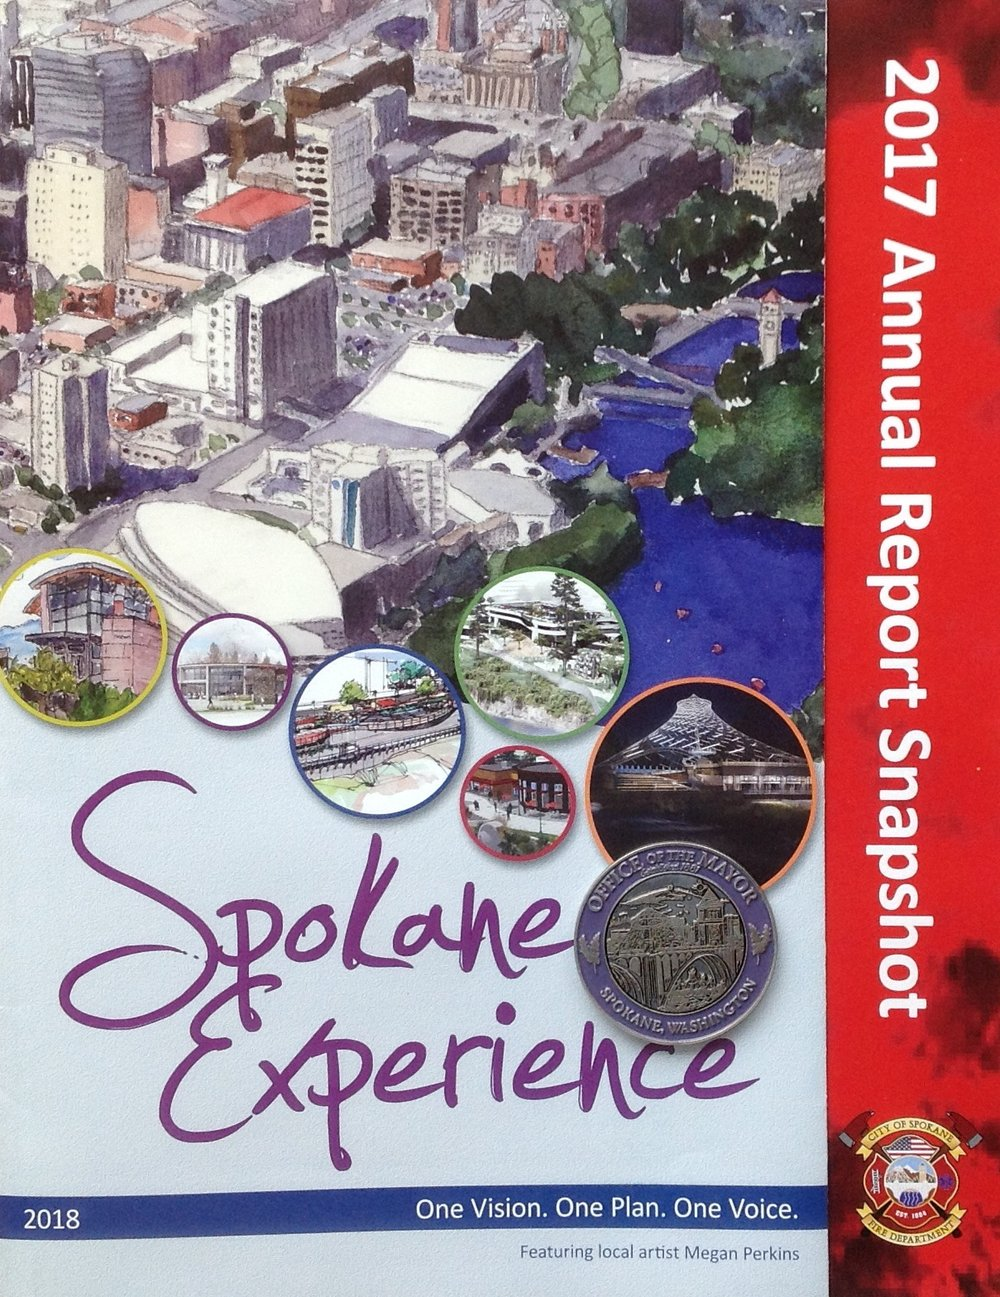 Here's the report for the city that was handed out to all the attendees. Photographed just below the circle with the Pavilion in it, is the Coin of the City, which was presented to me at the end of the speech. I suppose it is like the traditional Key of the City.   Here's to Spokane and its future!